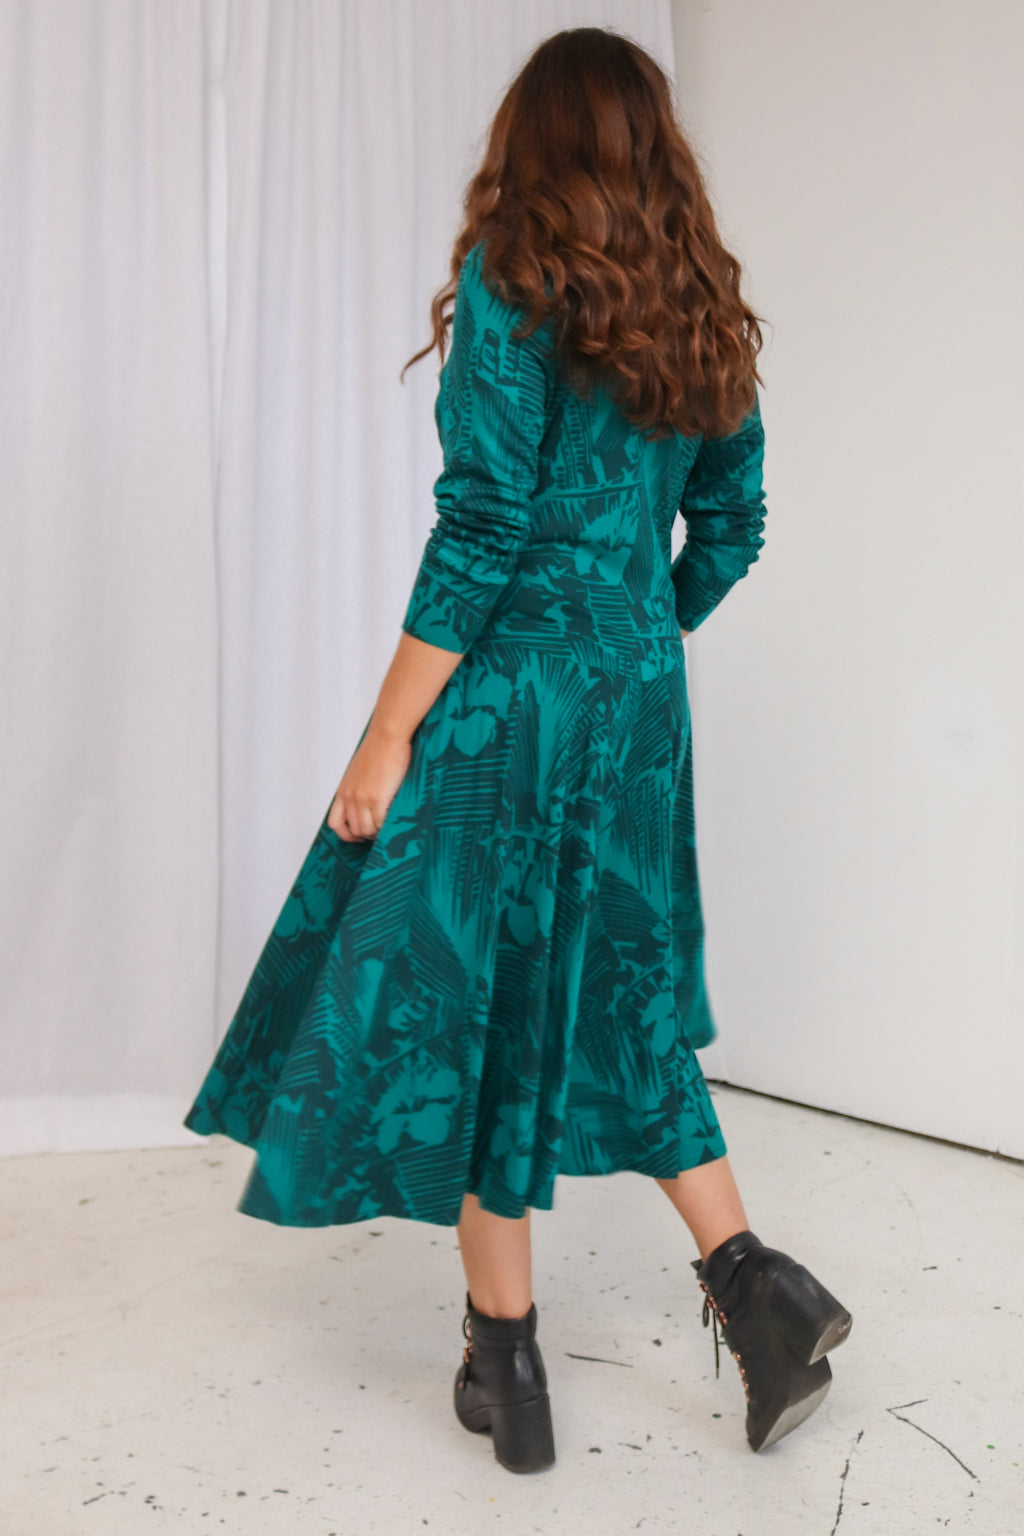 VintageMidi Dress in Green Hawaiian Print - Dirty Disco